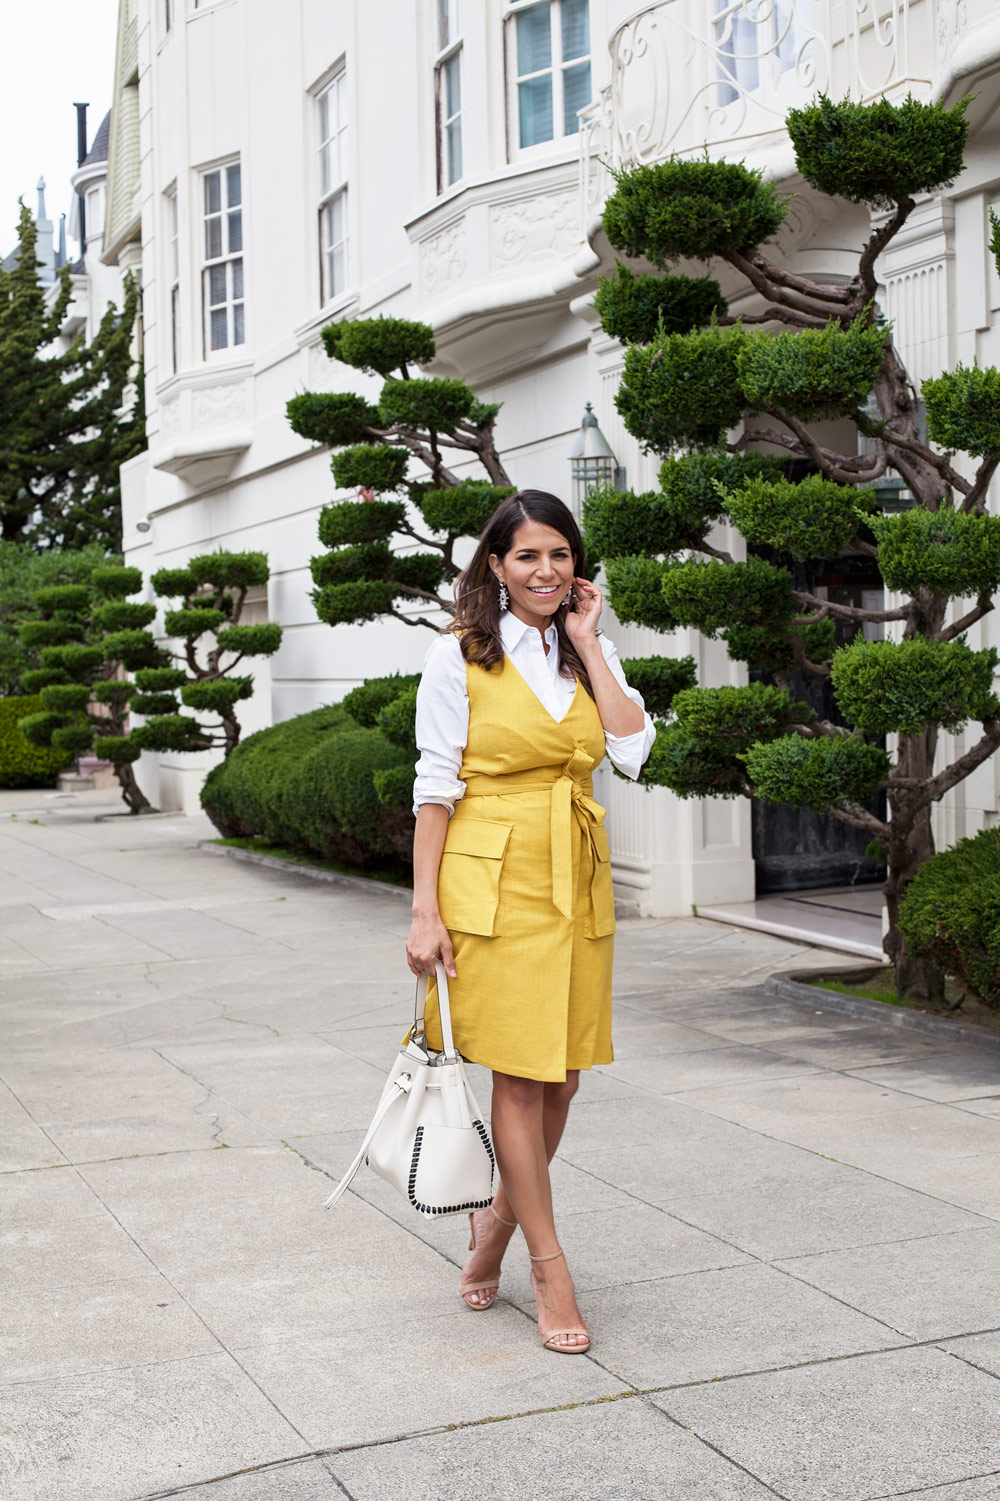 Work Wear Yellow Mustard Wrap Dress Etcetera NYC Spring Looks for Work Corporate Catwalk